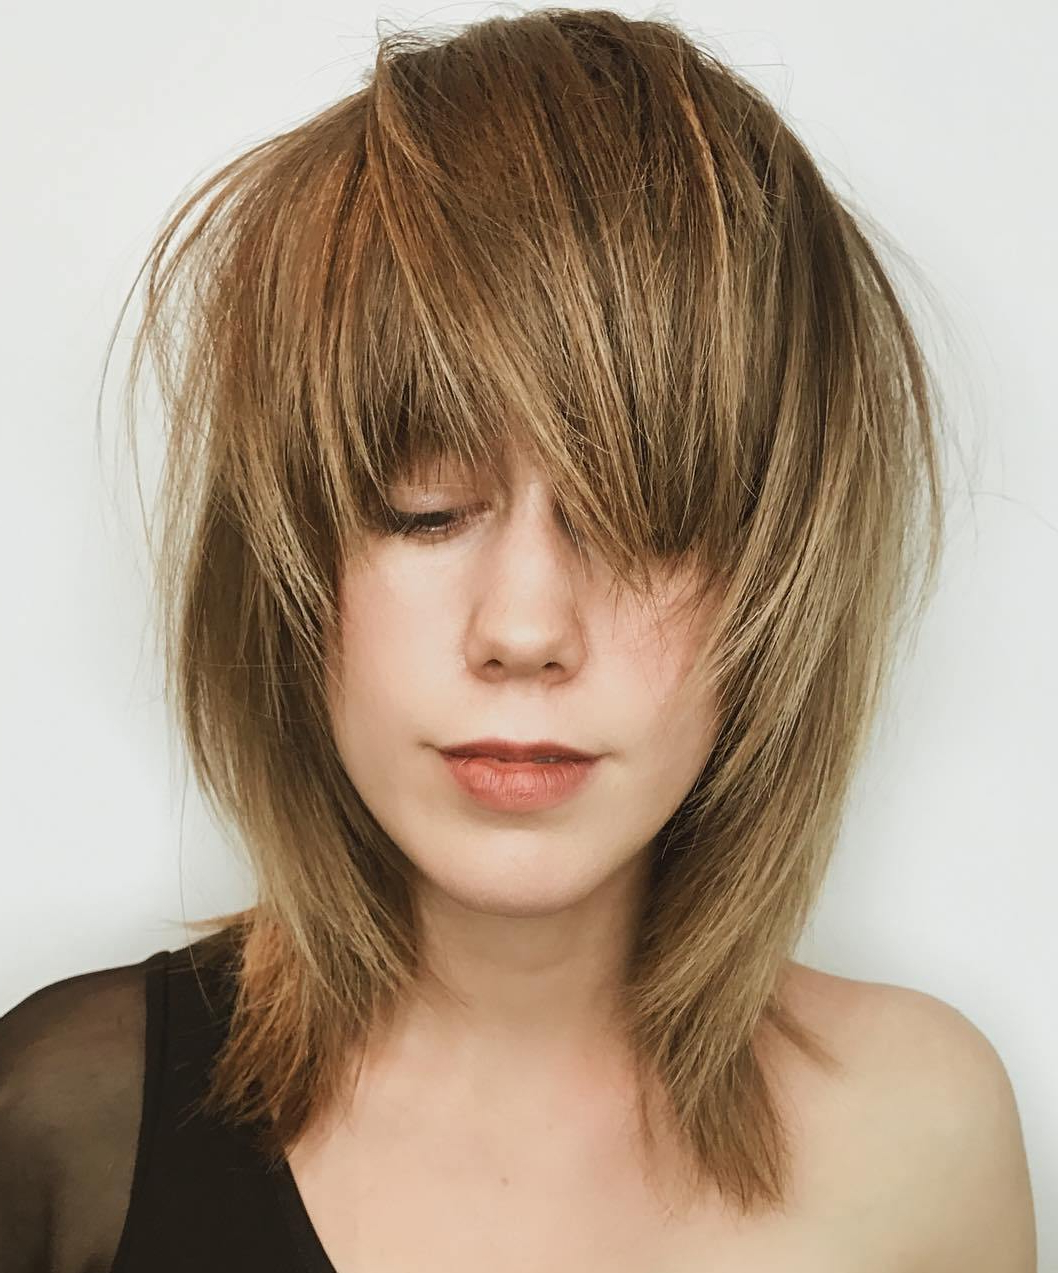 The Most Instagrammable Hairstyles With Bangs In 2019 Regarding Newest Shaggy Chestnut Medium Length Hairstyles (View 17 of 20)